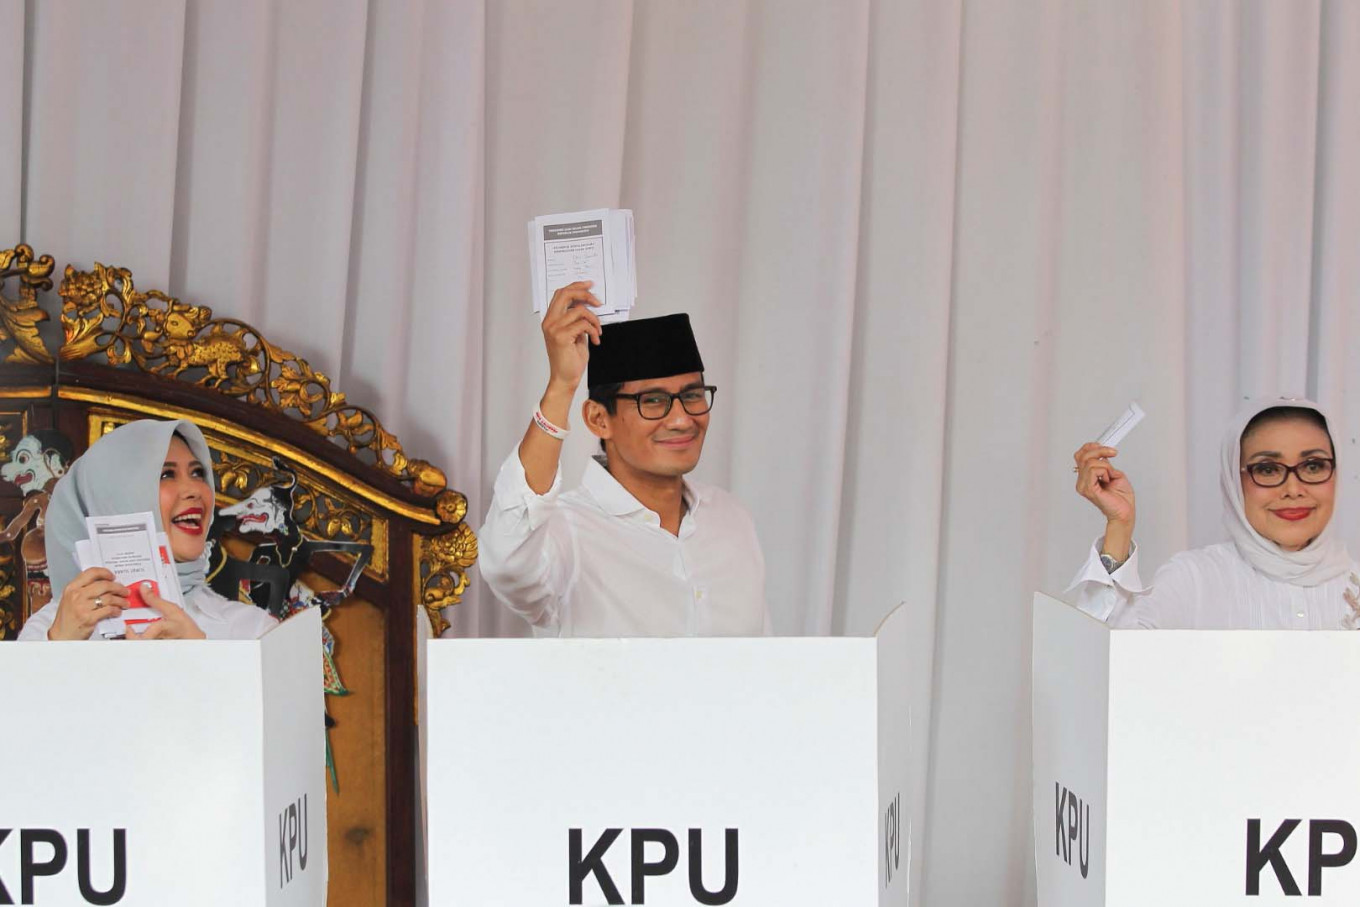 Jokowi remark gives political boost to Sandiaga